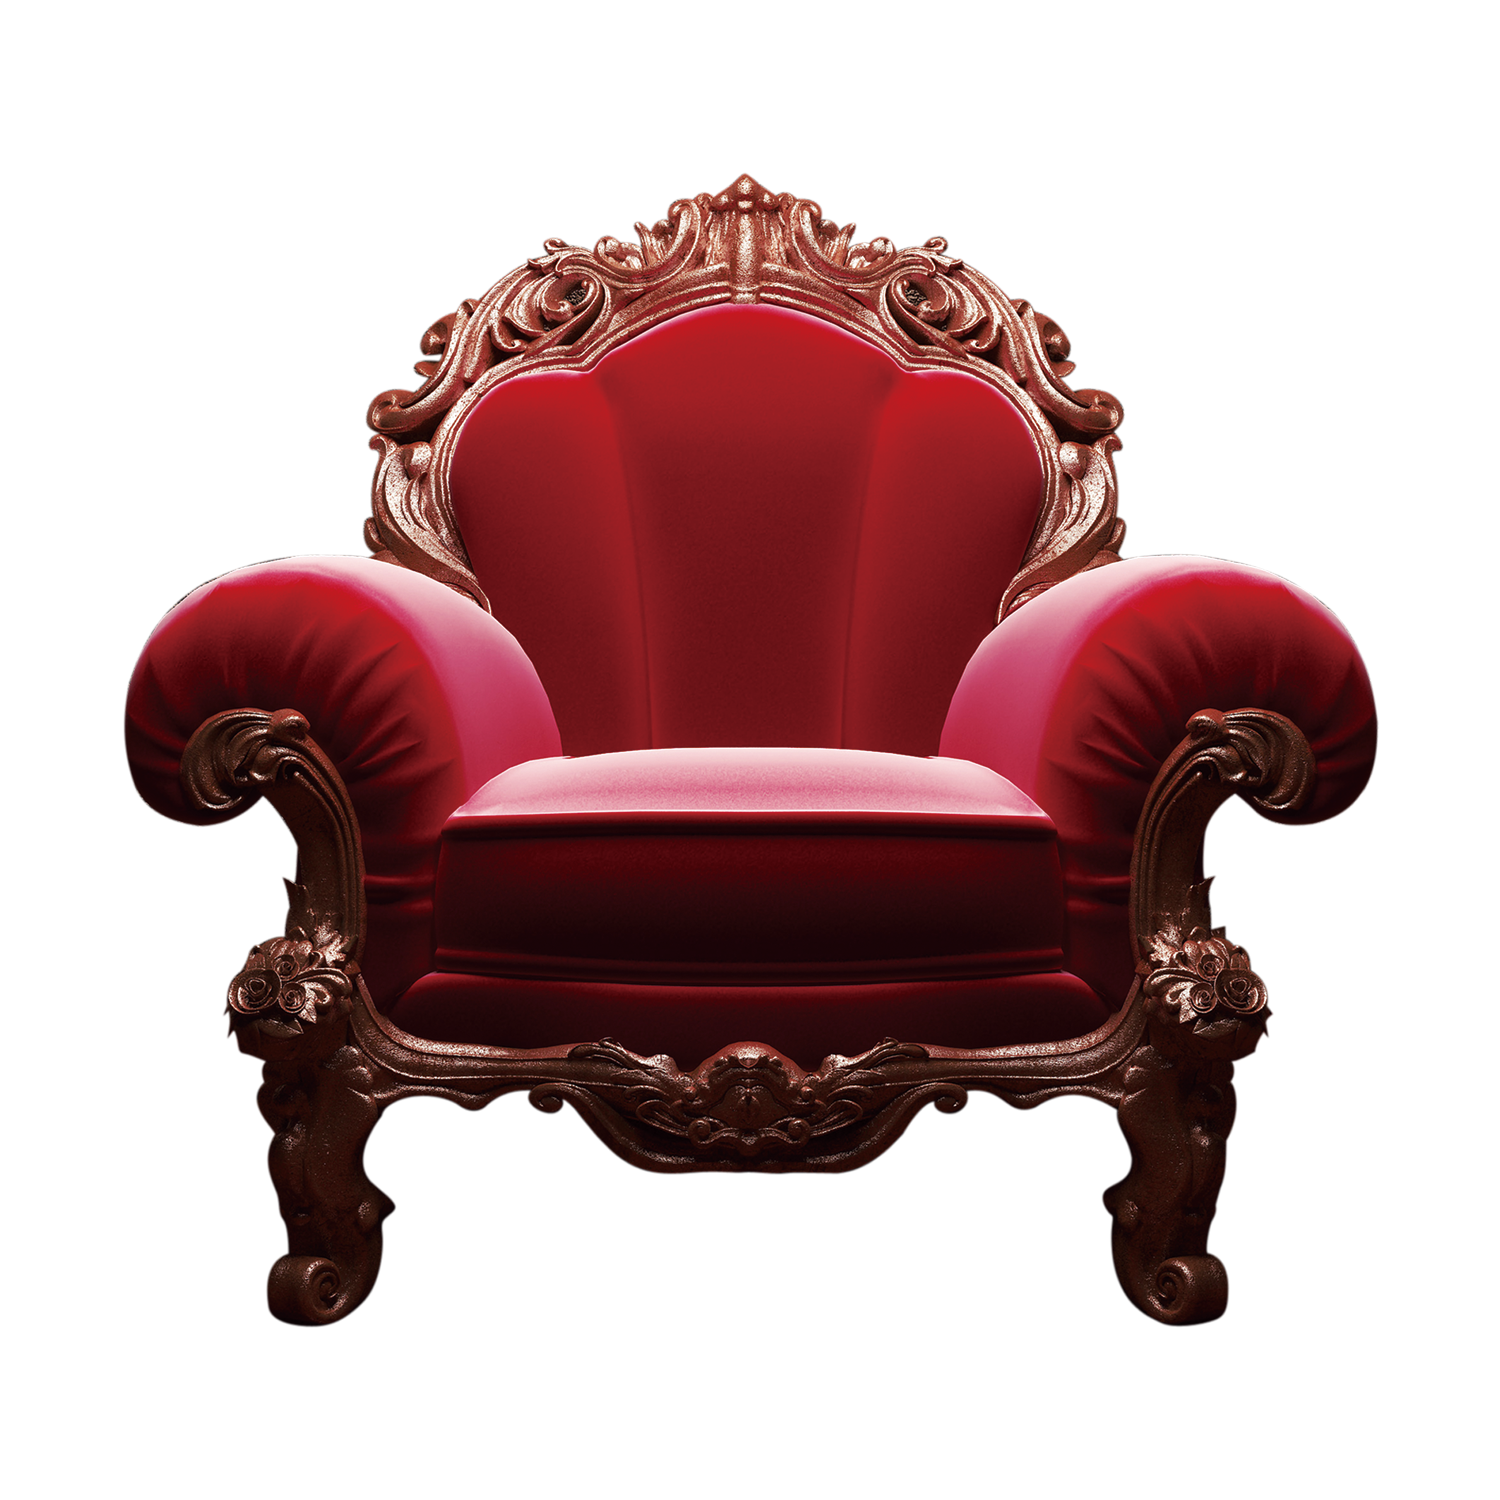 Chair table upholstery clip. Furniture clipart red couch